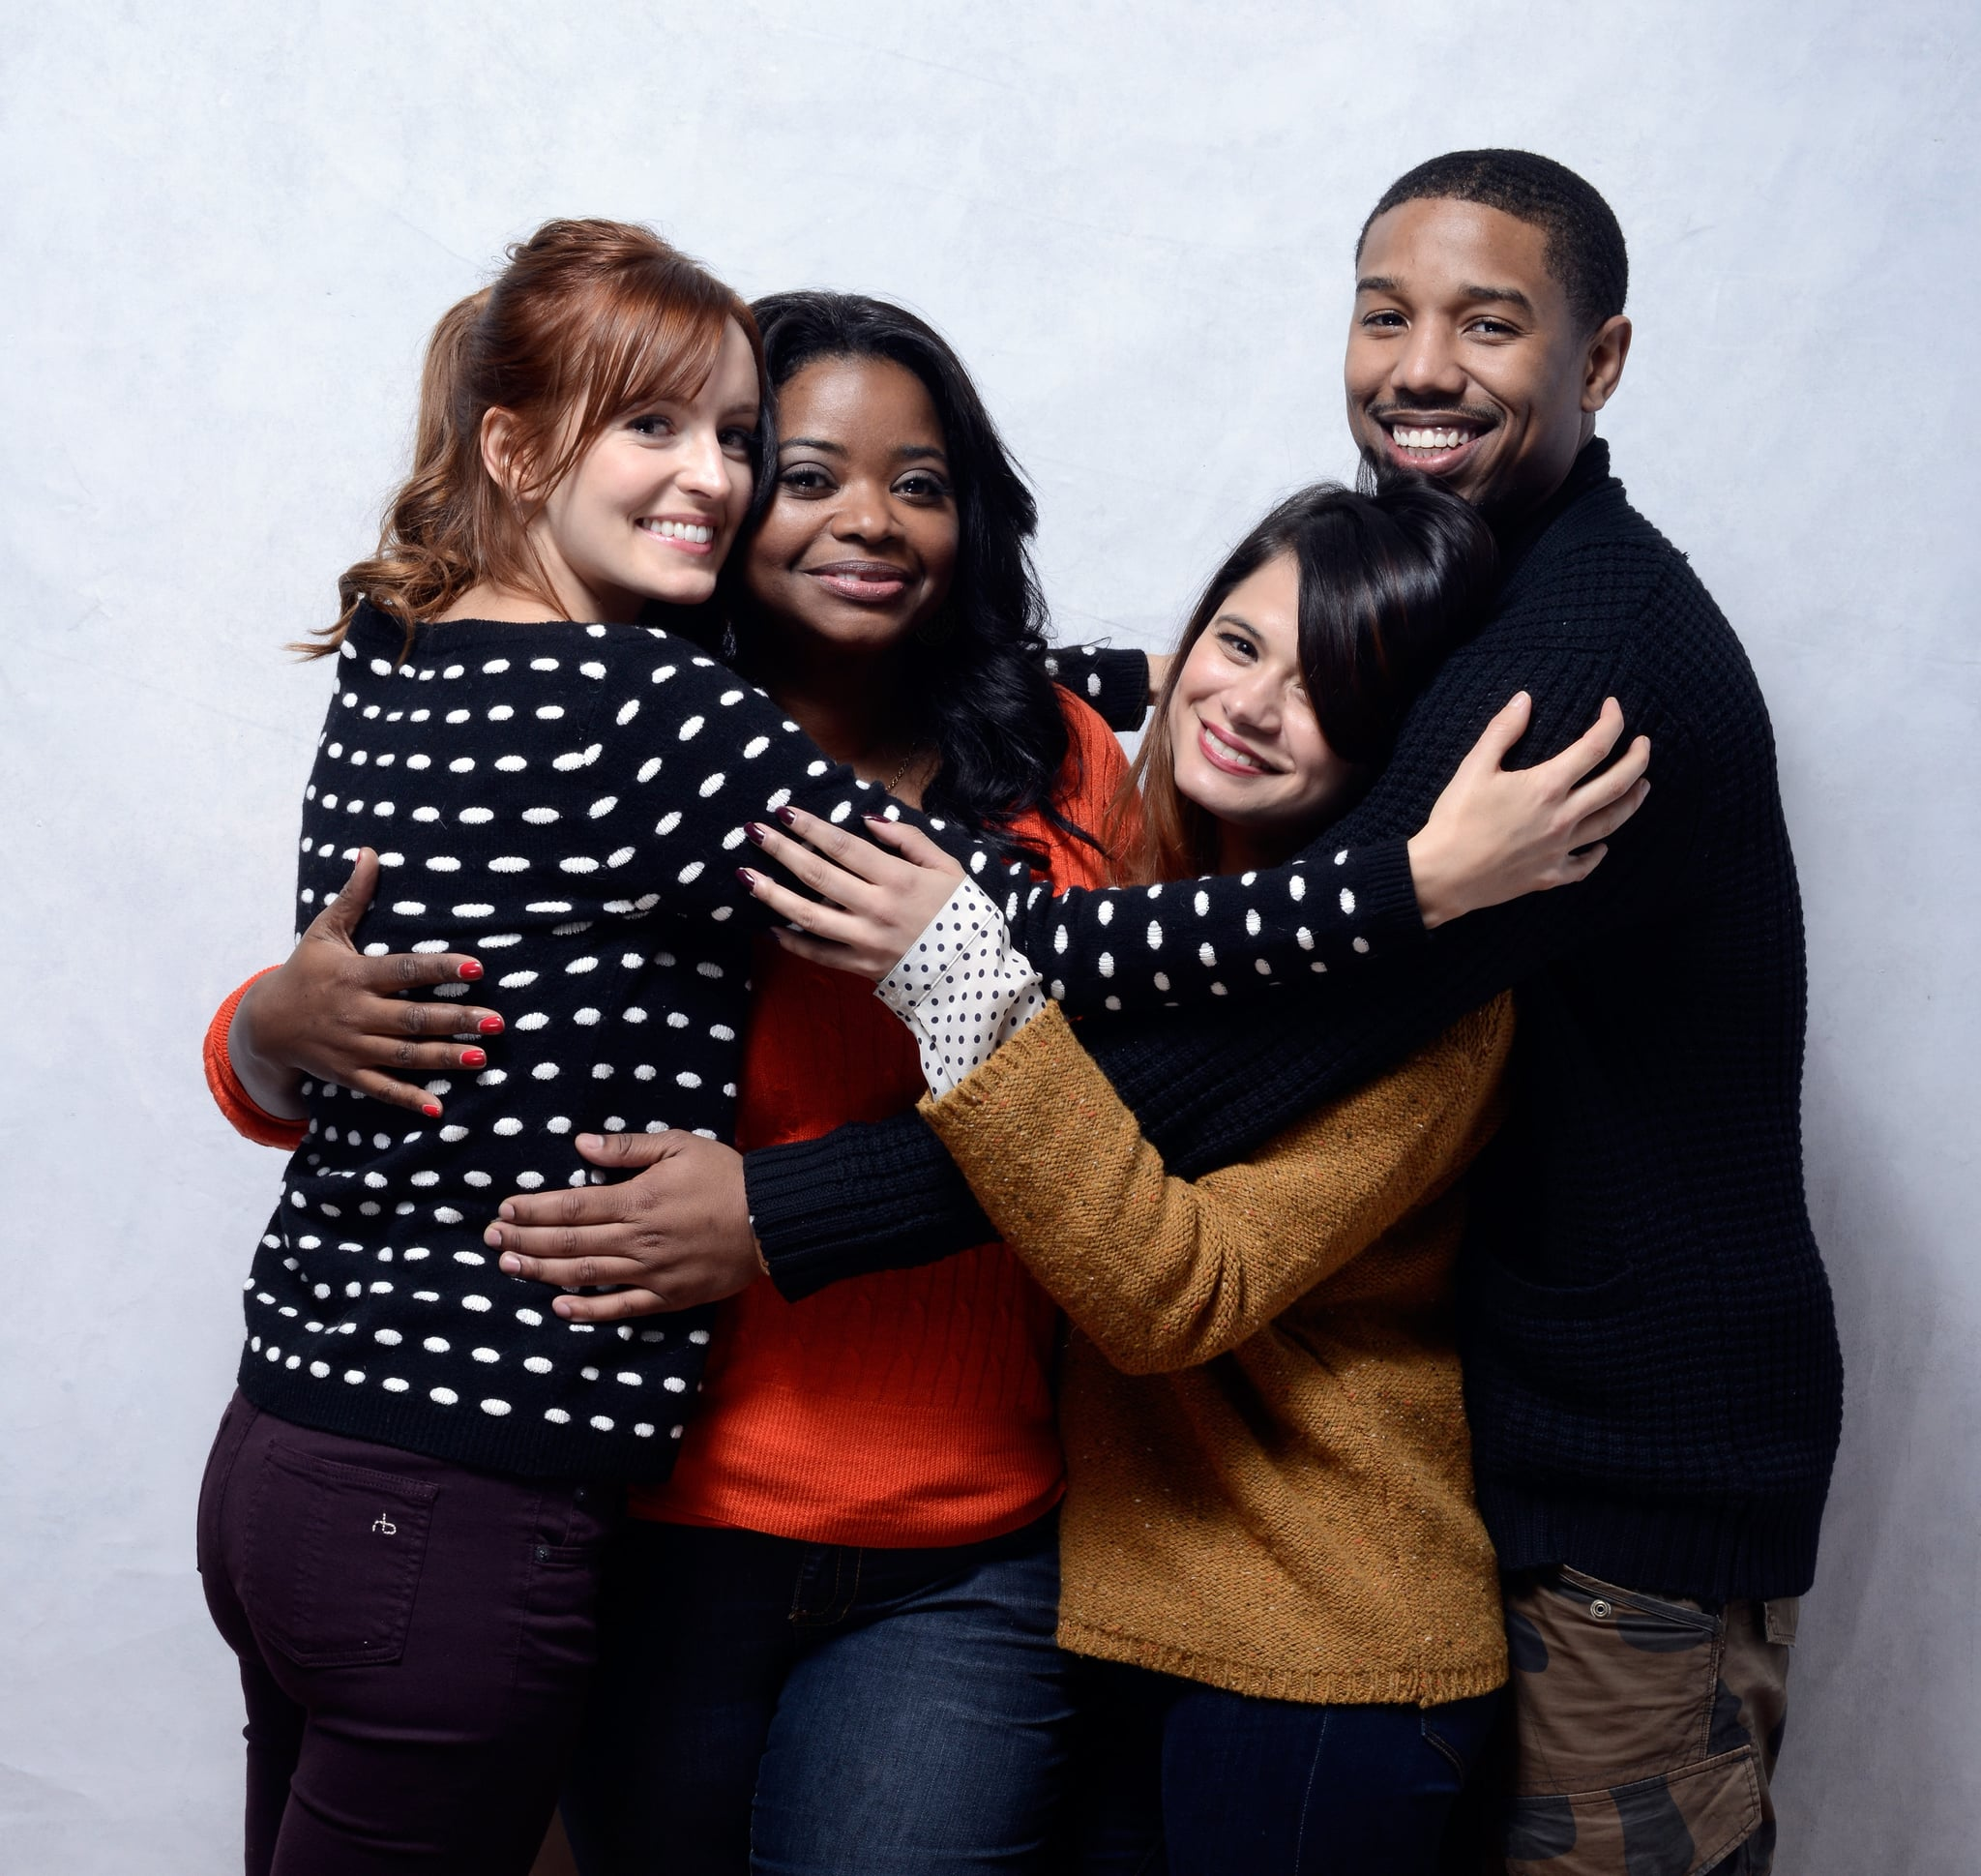 The stars of Fruitvale Station — Ahna O'Reilly, Octavia Spencer, Melonie Diaz, and Michael B. Jordan — took a sweet snap together while promoting the film in 2013.